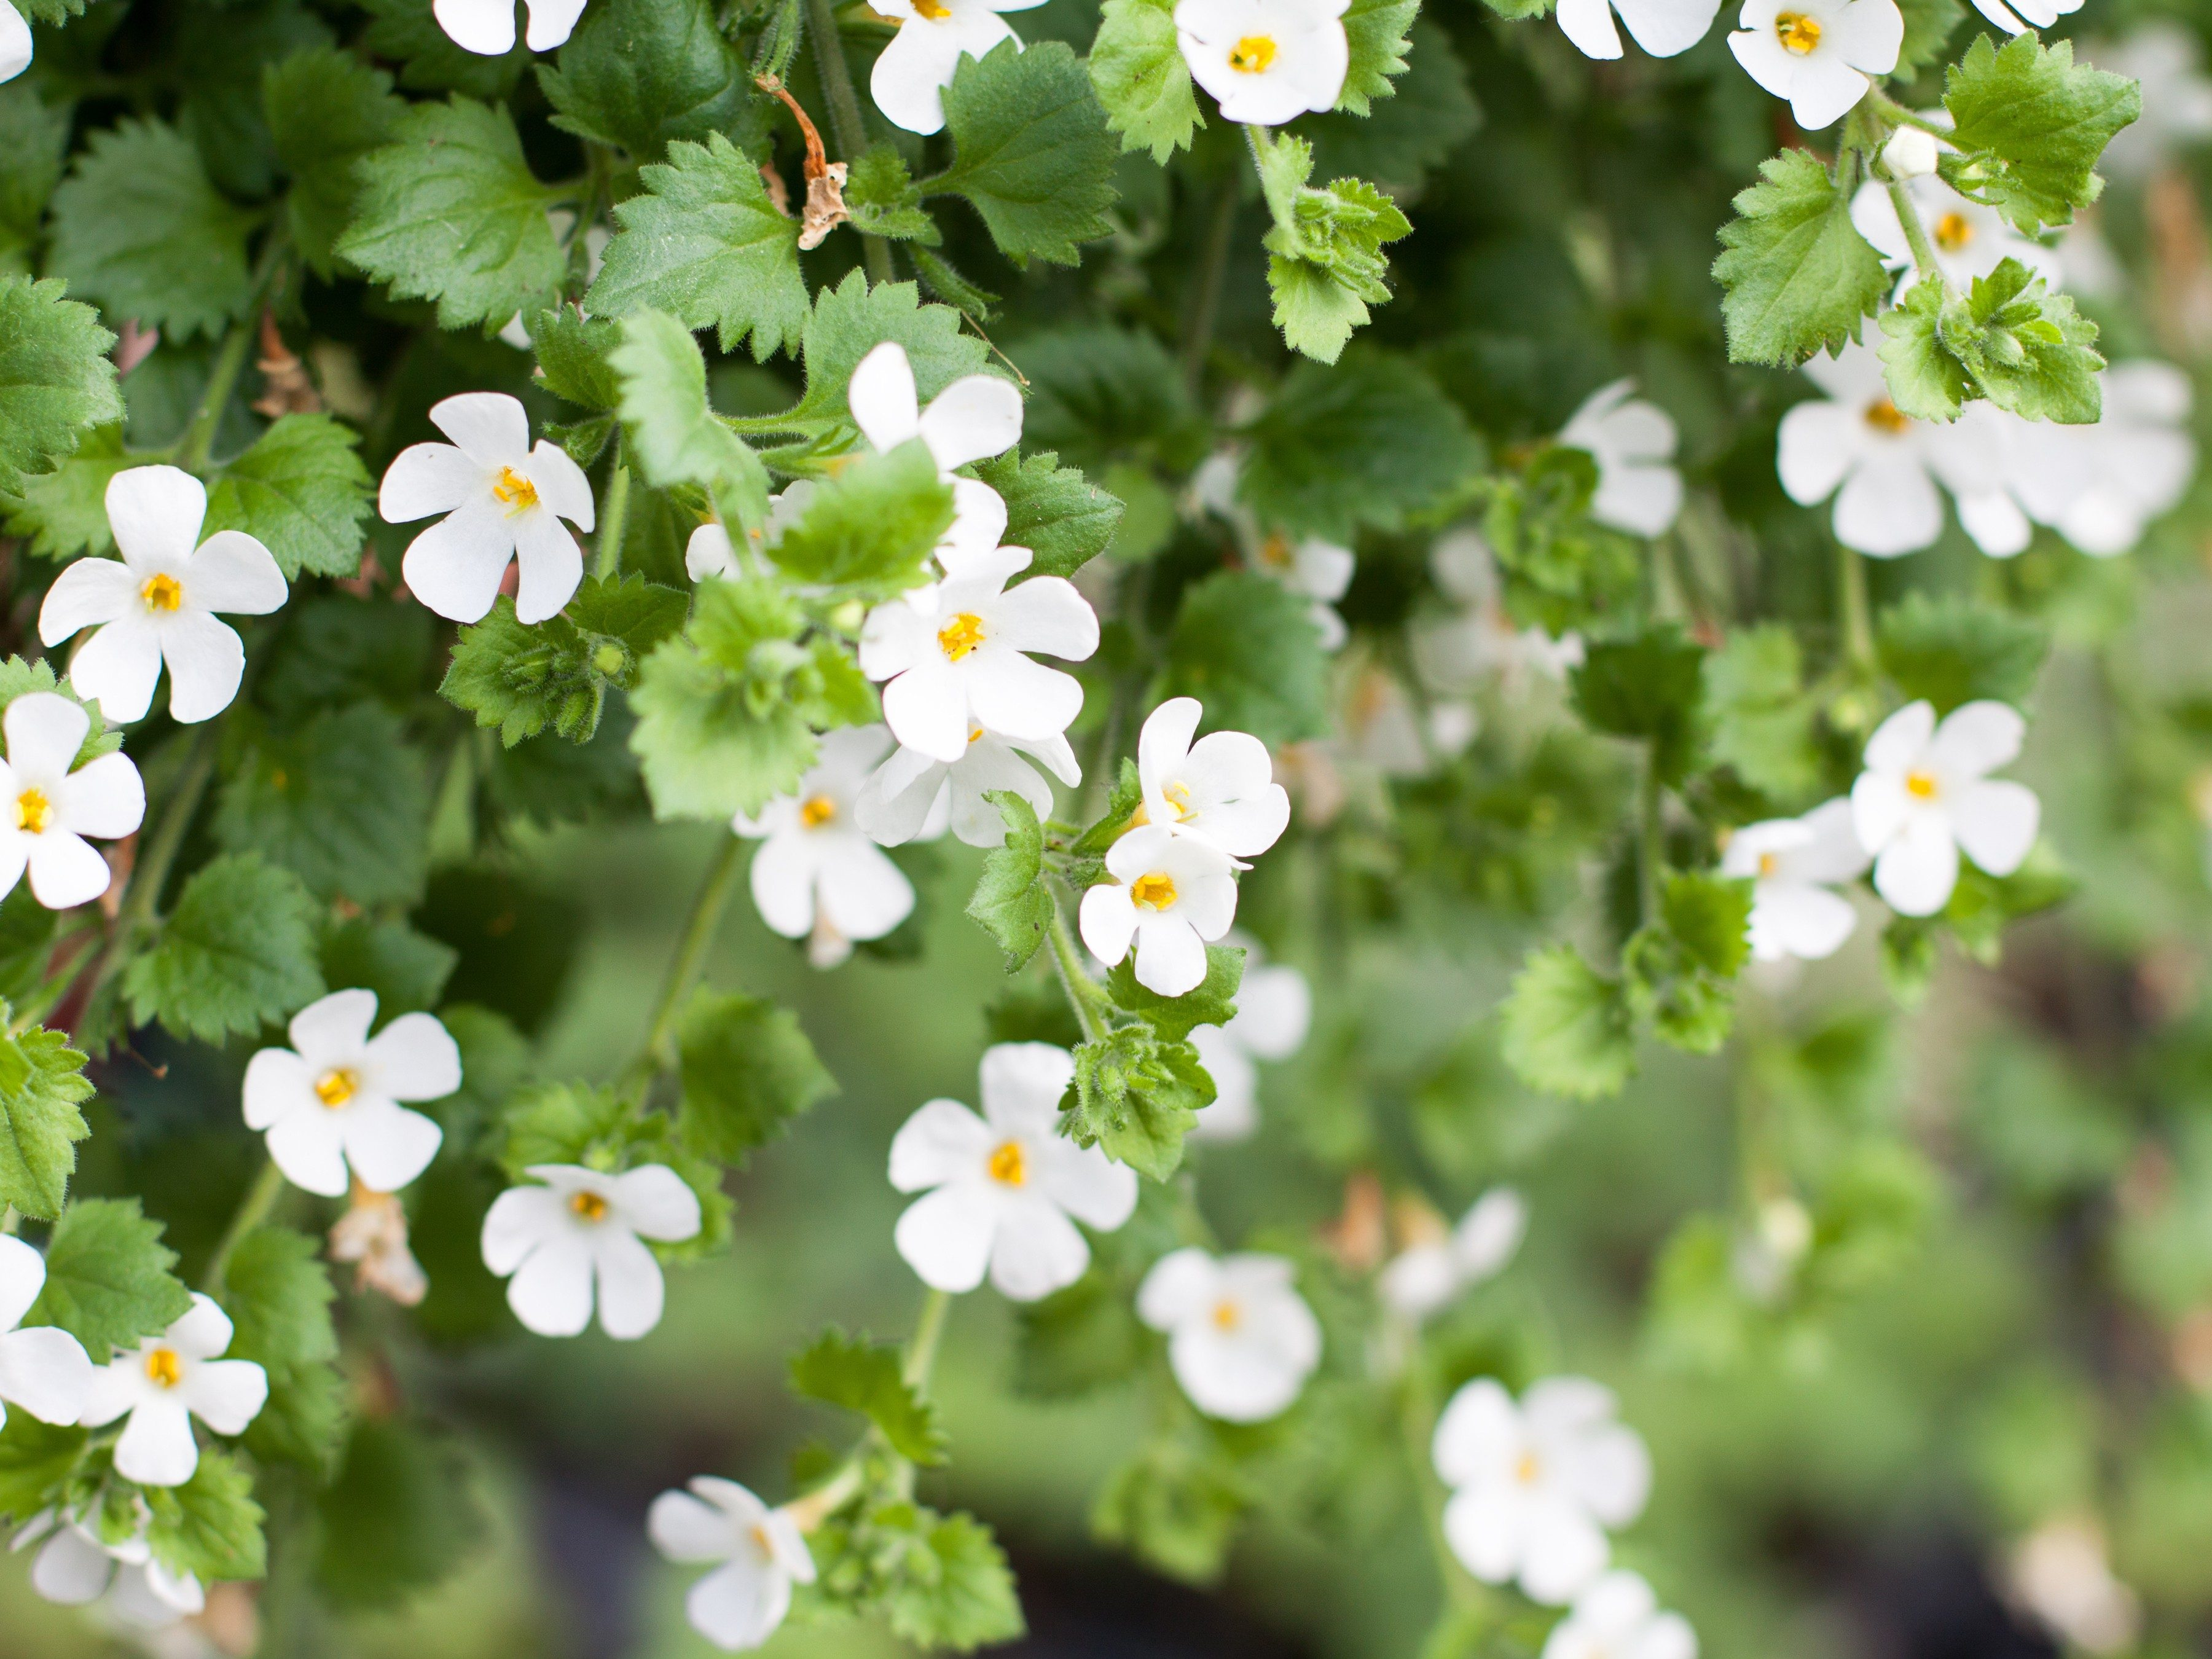 8 annuals that are perfect for container gardening 2 bacopa izmirmasajfo